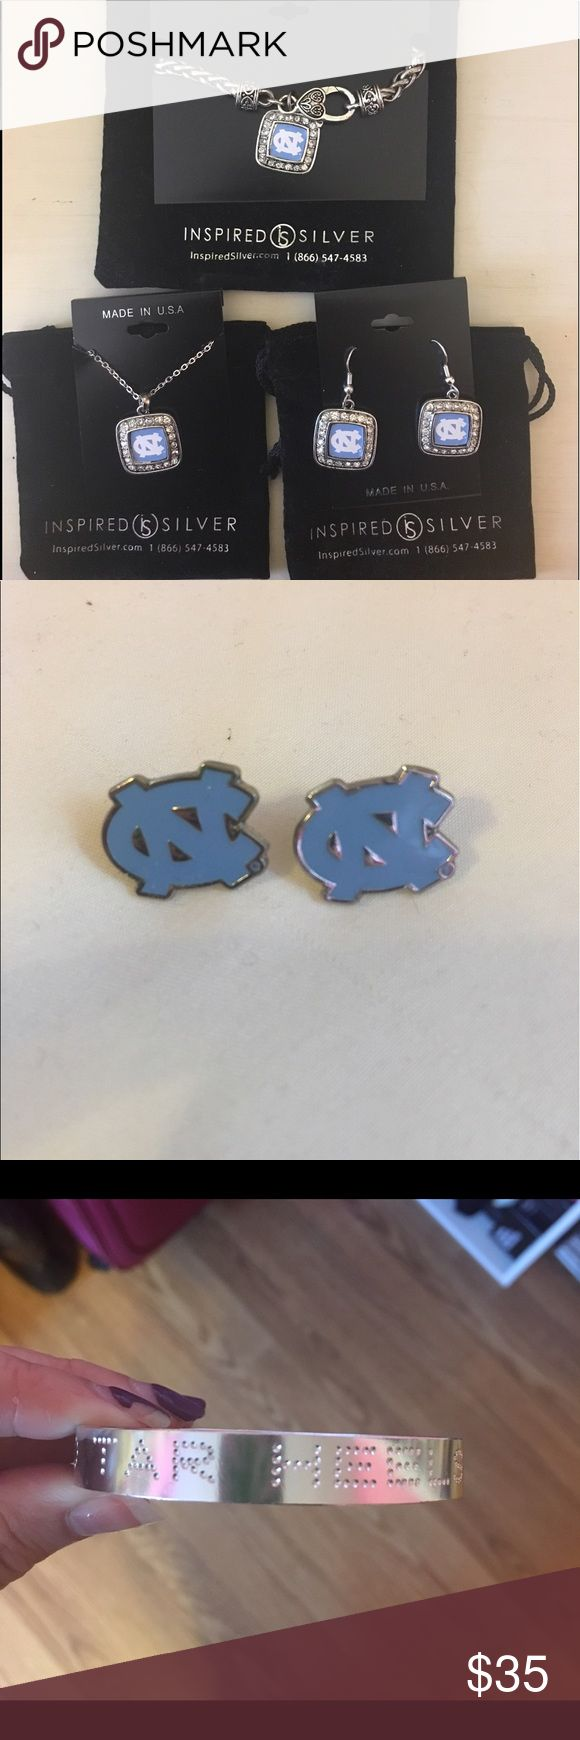 """Carolina Jewelry 5 Pieces!!! UNC Chapel Hill jewelry! You get everything in the pictures! This includes the inspired silver bracelet, earrings, and necklace, a bracelet that says """"Go Tar Heels"""", and NC stud earrings bought from the bookstore at UNC. The inspired silver set has never been worn! Jewelry"""